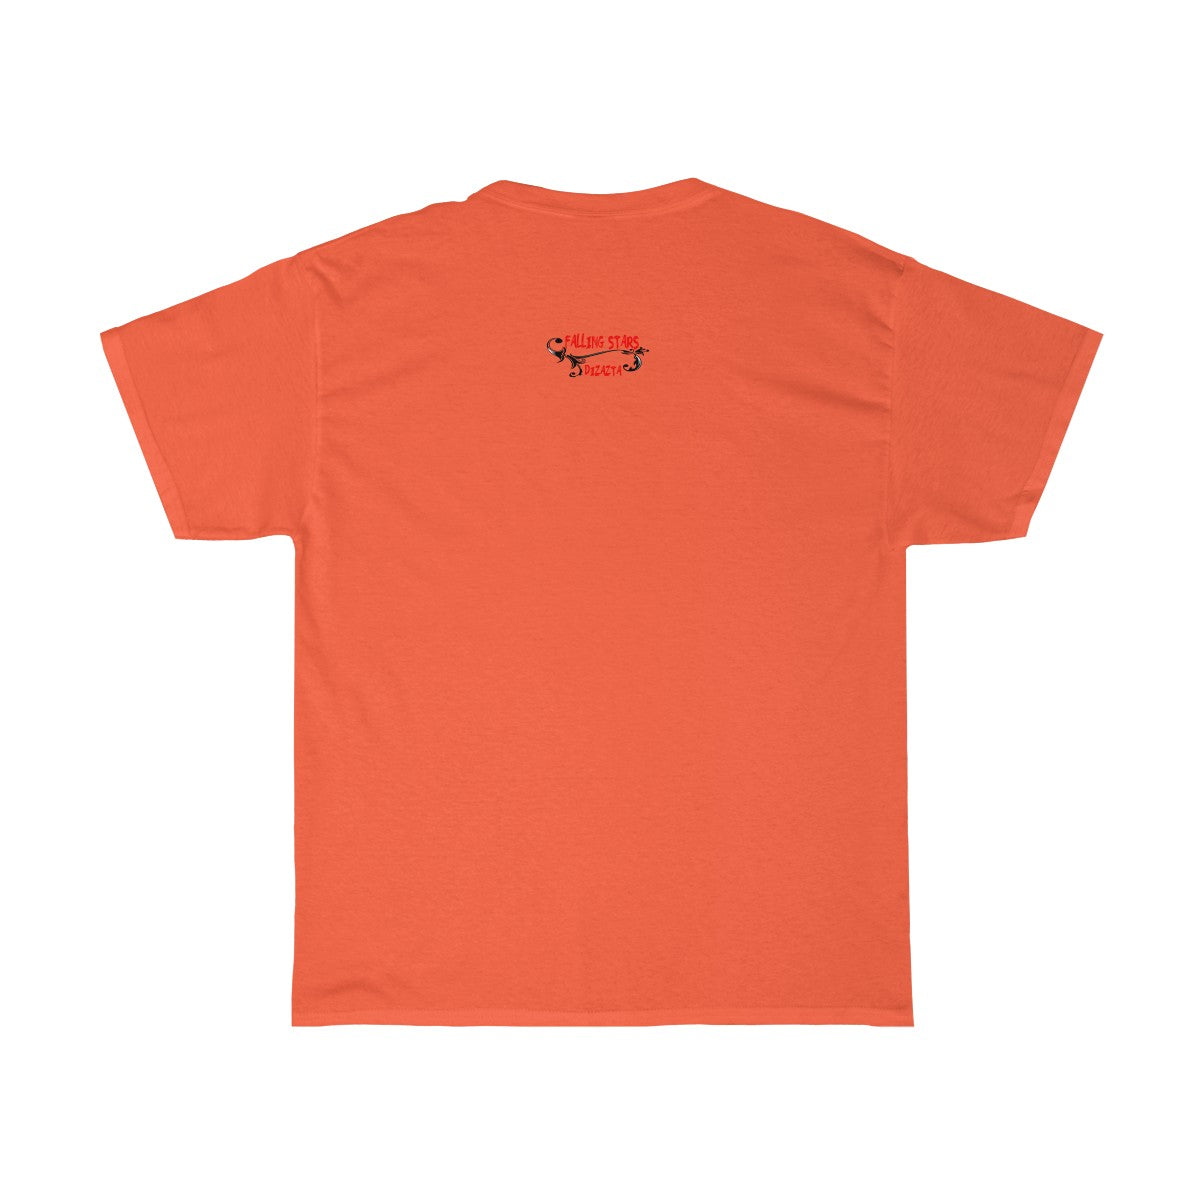 DAM 0205 Unisex Heavy Cotton Tee